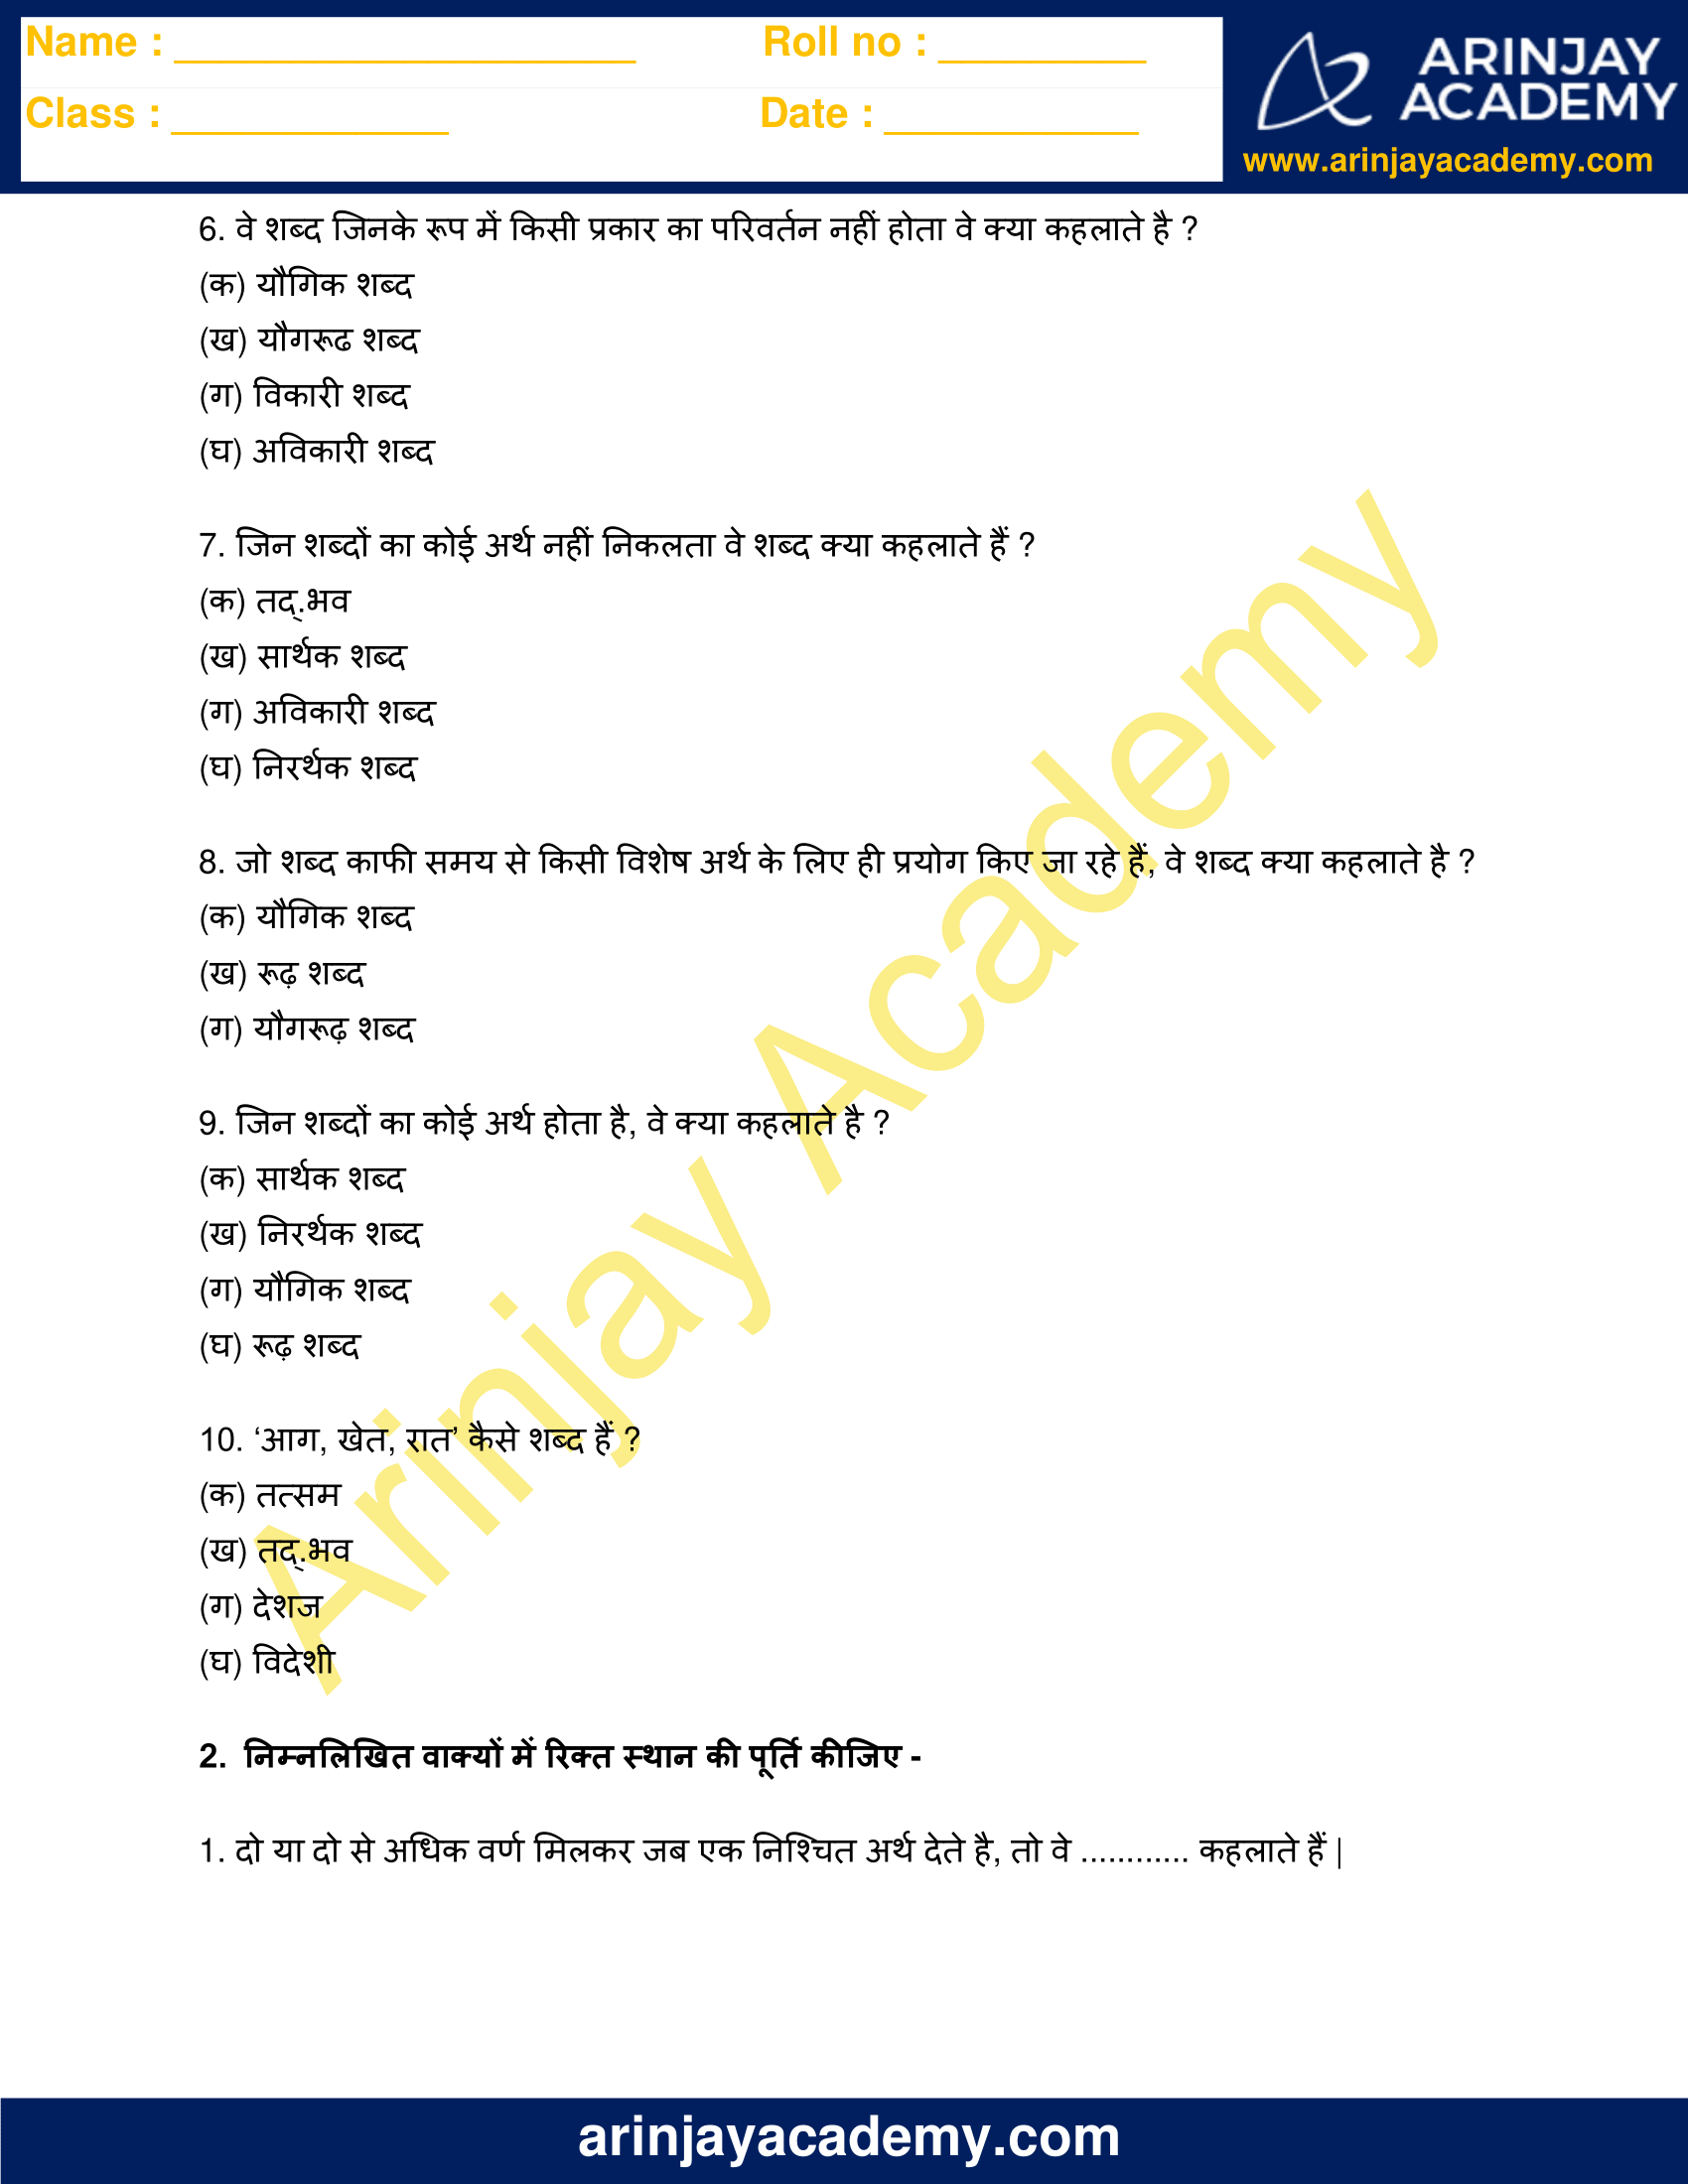 Shabd in Hindi Worksheet for Class 3 image 2